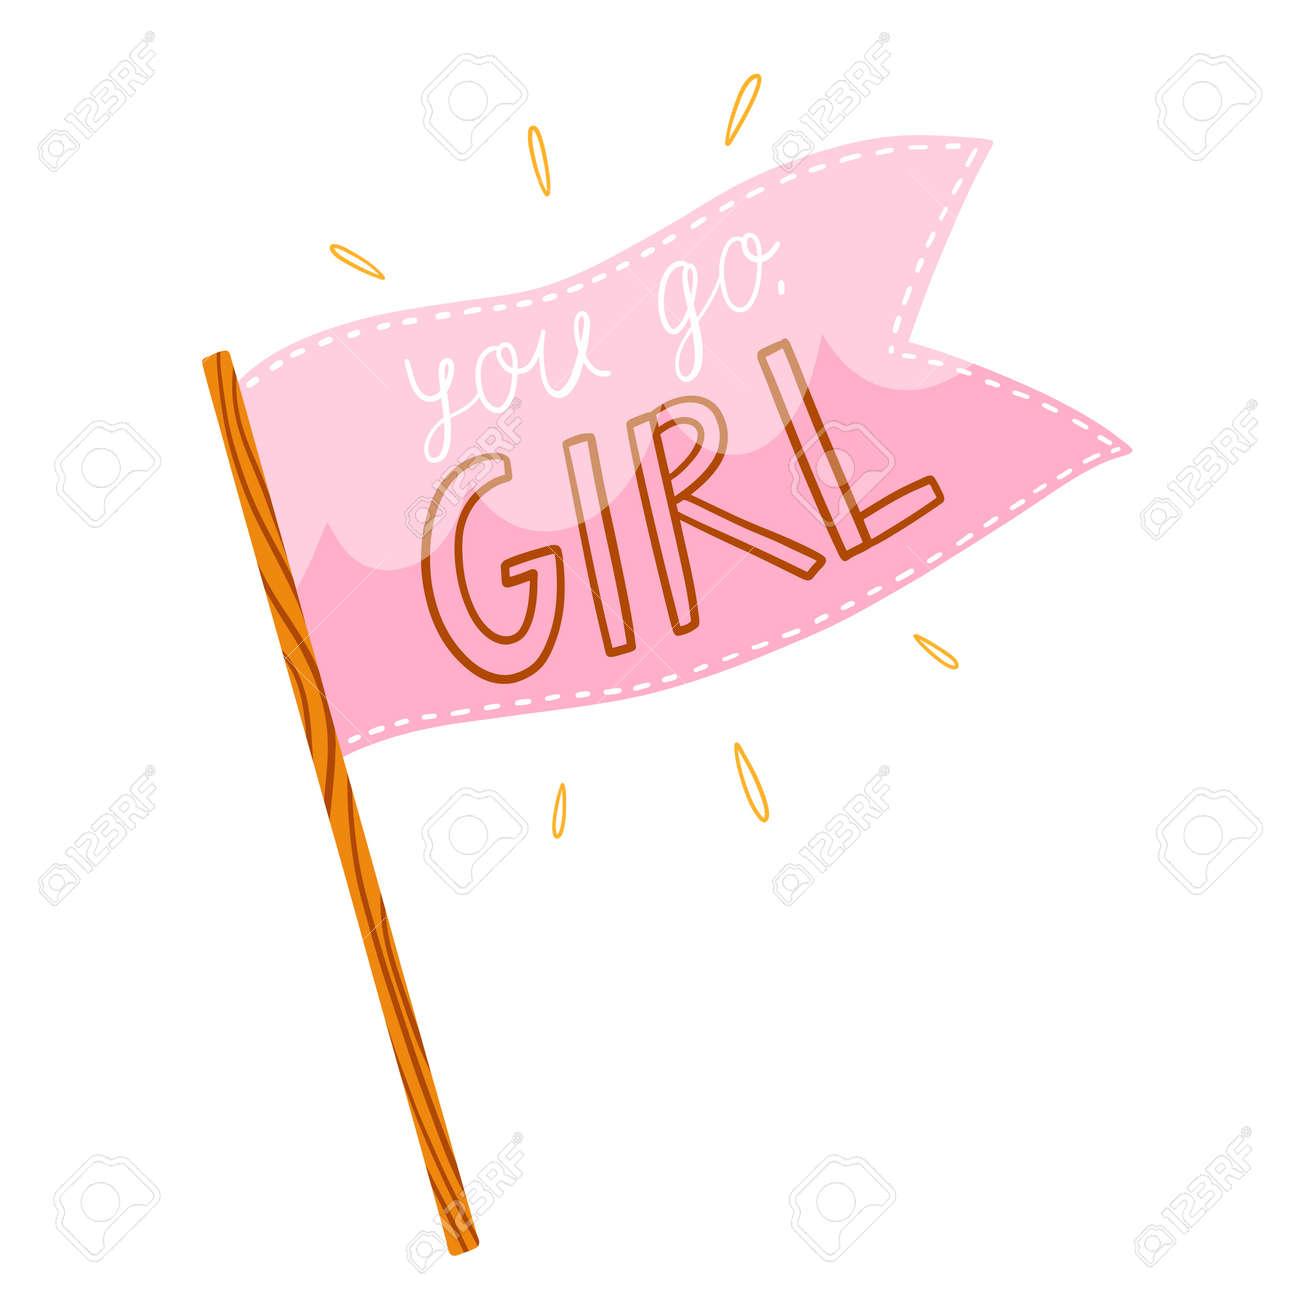 You go girl, pink flag with supportive lettering, vector illustration isolated on white background - 162599334